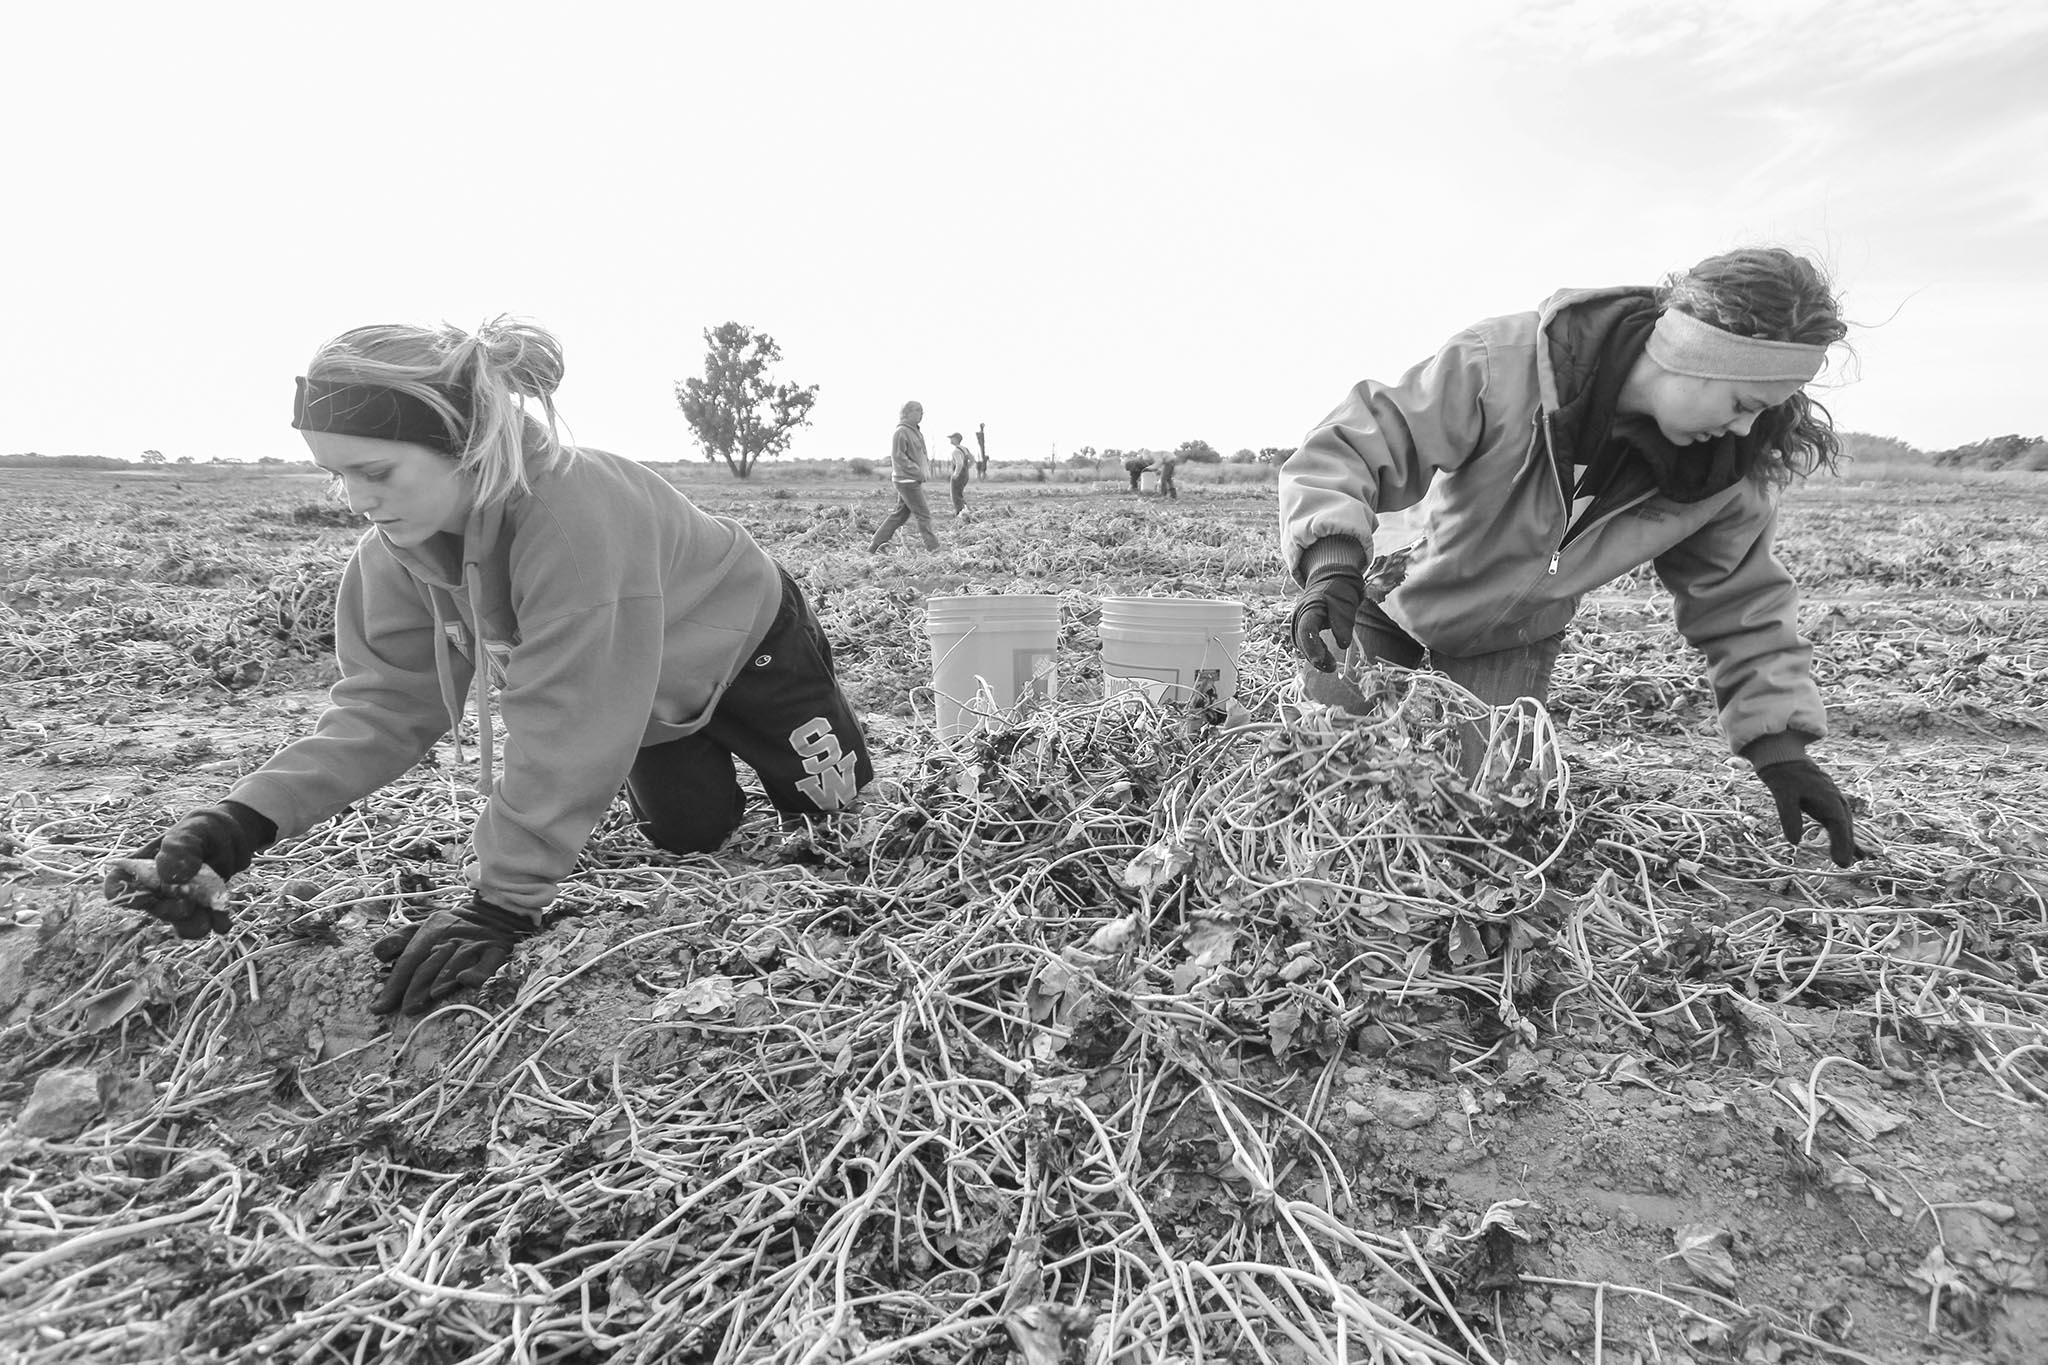 In 2013, a Hydro-area farmer had leftover sweet potatoes in a field that did not fit size requirements for harvest. OKFB coordinated an effort to bring in volunteers from the surrounding community and beyond to harvest the remaining sweet potatoes for donation to the Regional Food Bank of Oklahoma. OKFB members, such as Caddo County member Brittany Krehbiel (right) along with volunteers from local schools and members of the Oklahoma Agricultural Leadership Program descended on the field to fill buckets with the bounty of tubers for needy families.